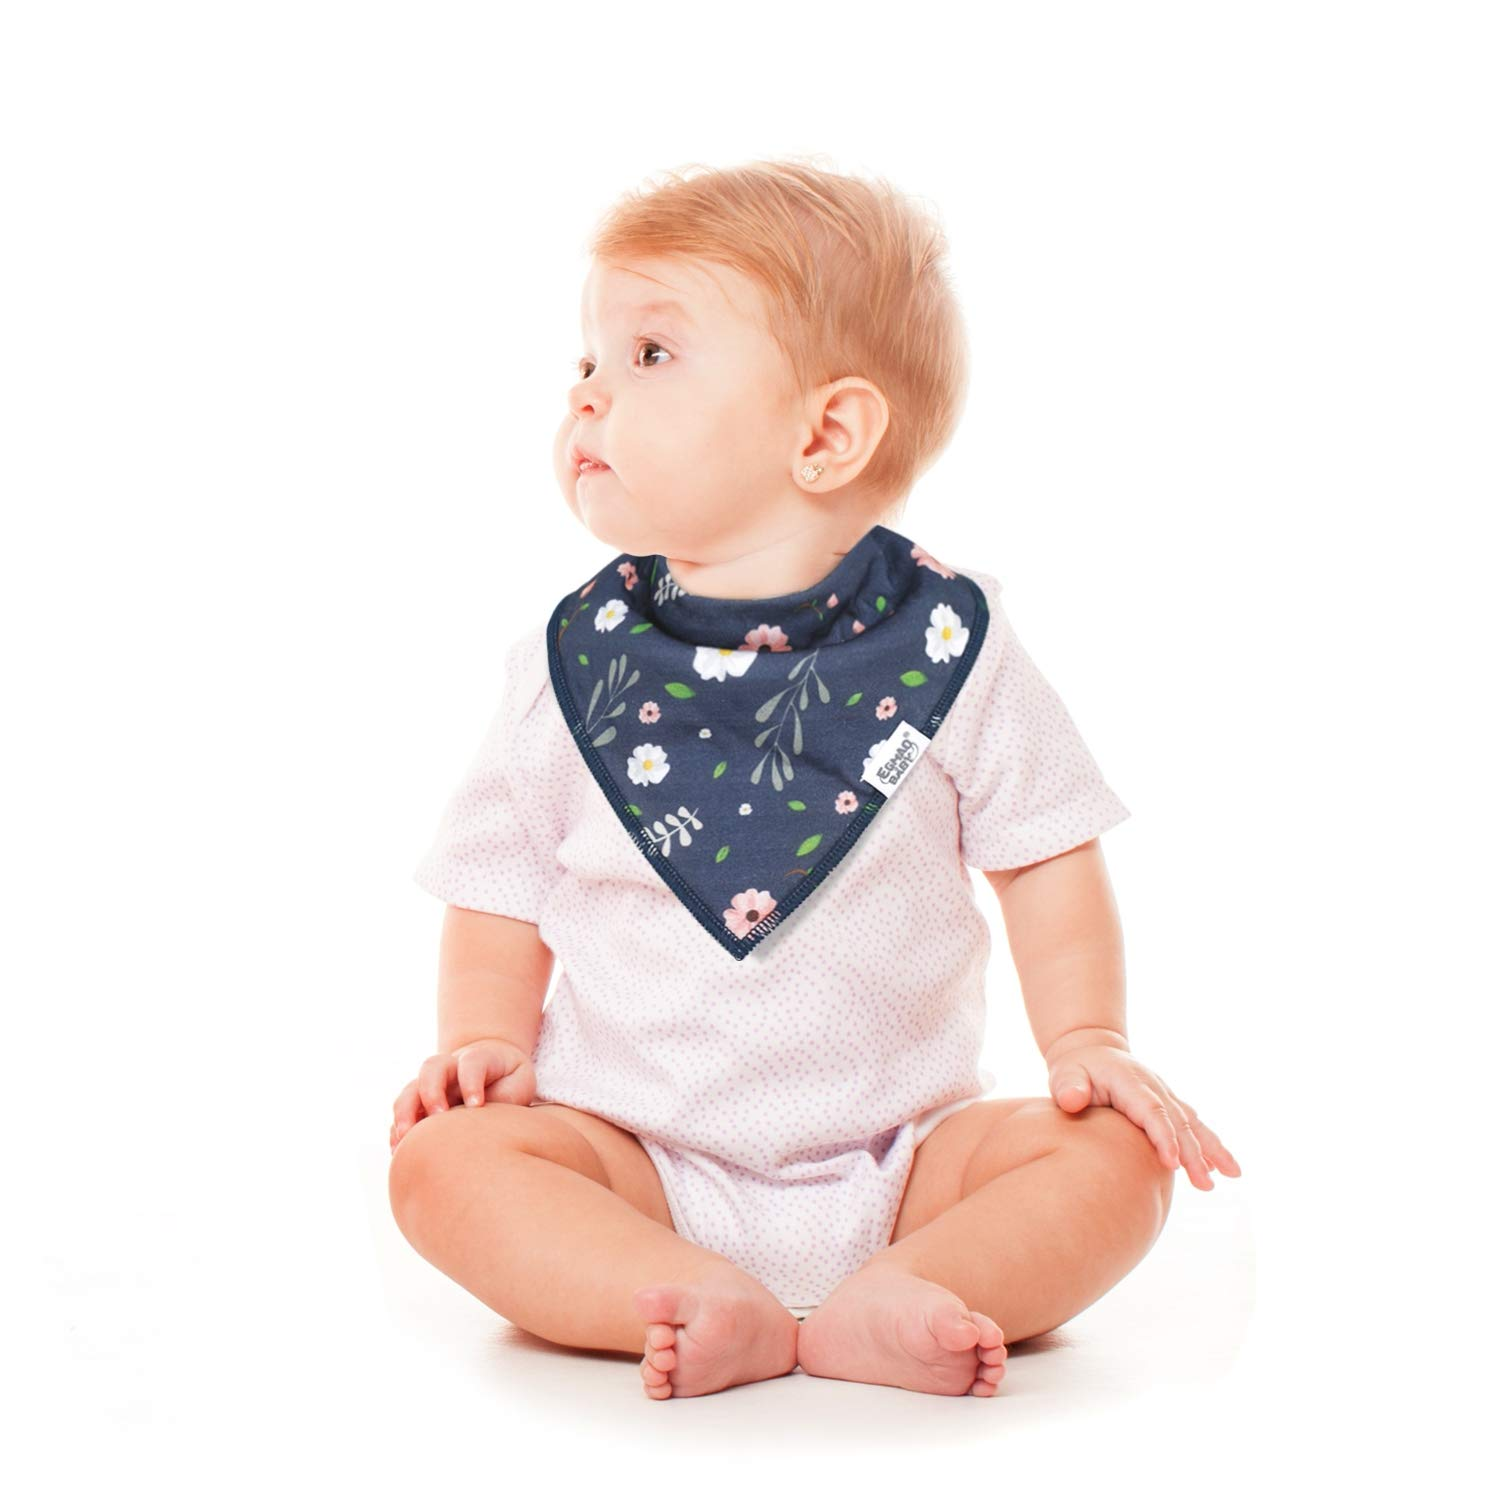 Baby Bandana Drool Bibs for Teething and Drooling,Baby Bibs Unisex for Boys and Girls 4 Pack Soft Cotton Organic Bib